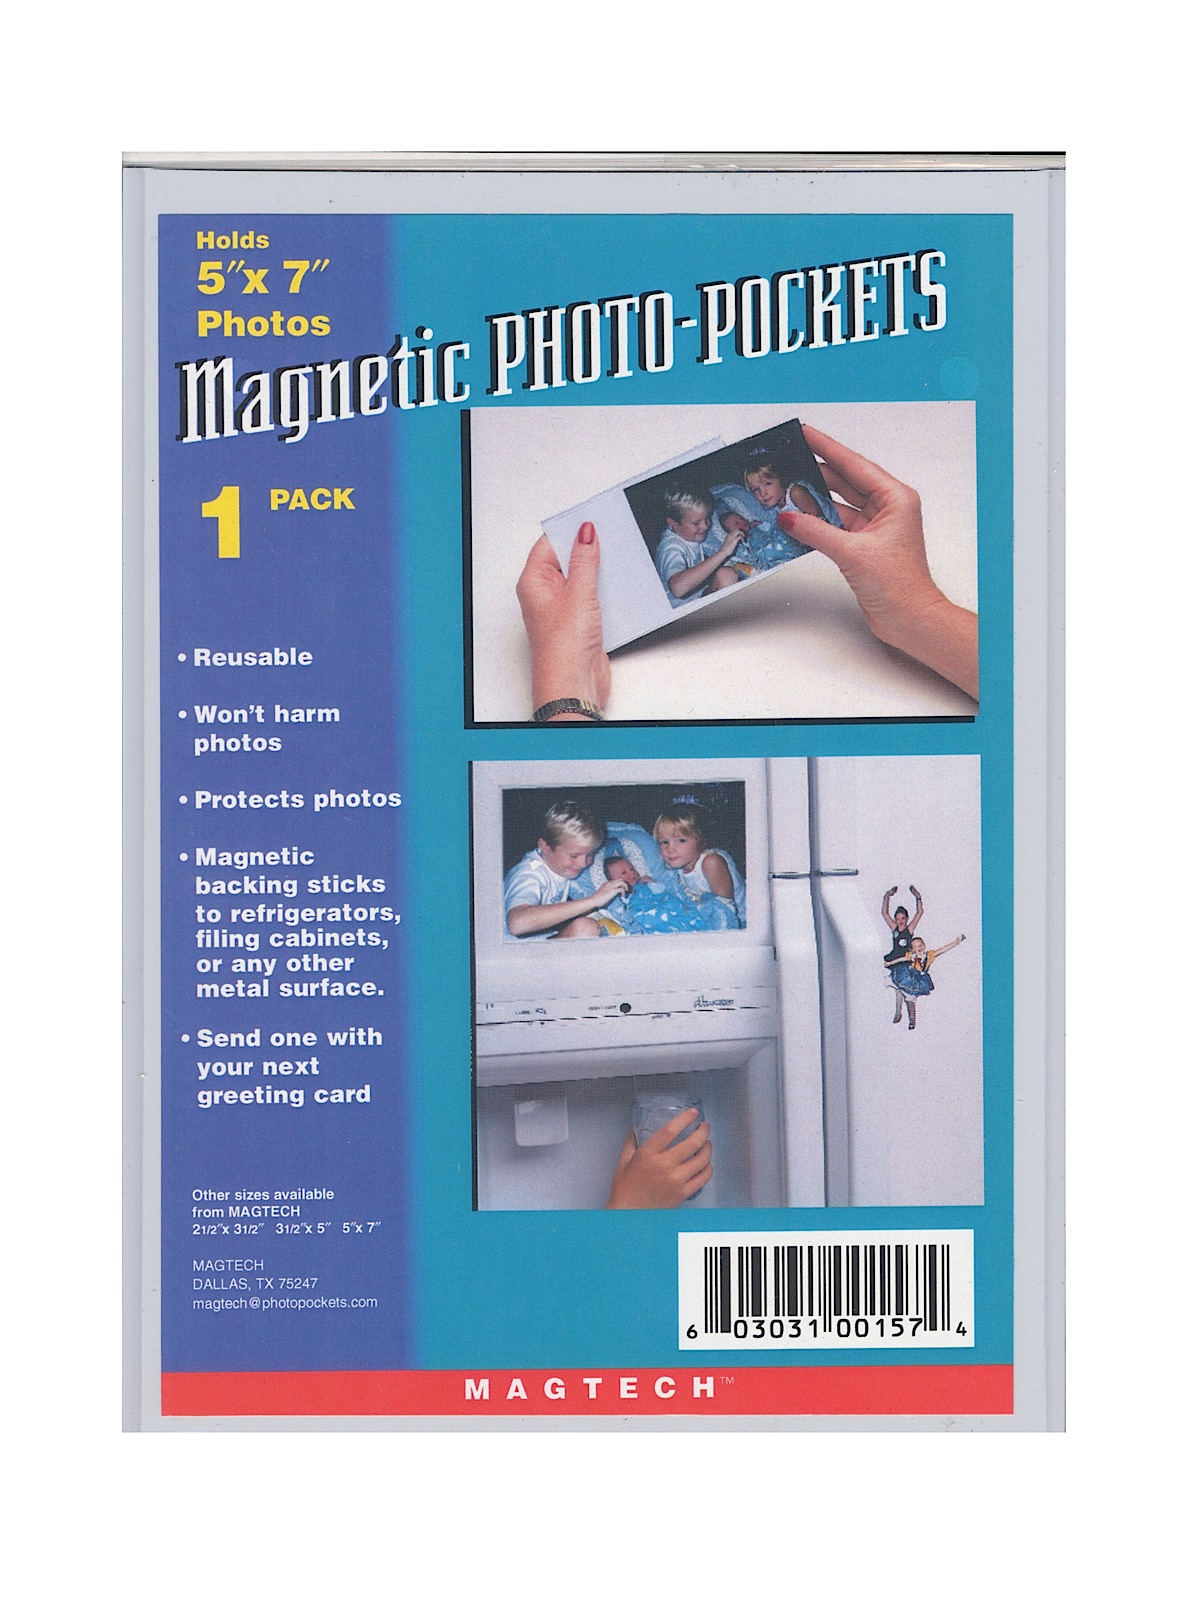 Magnetic Photo Pockets